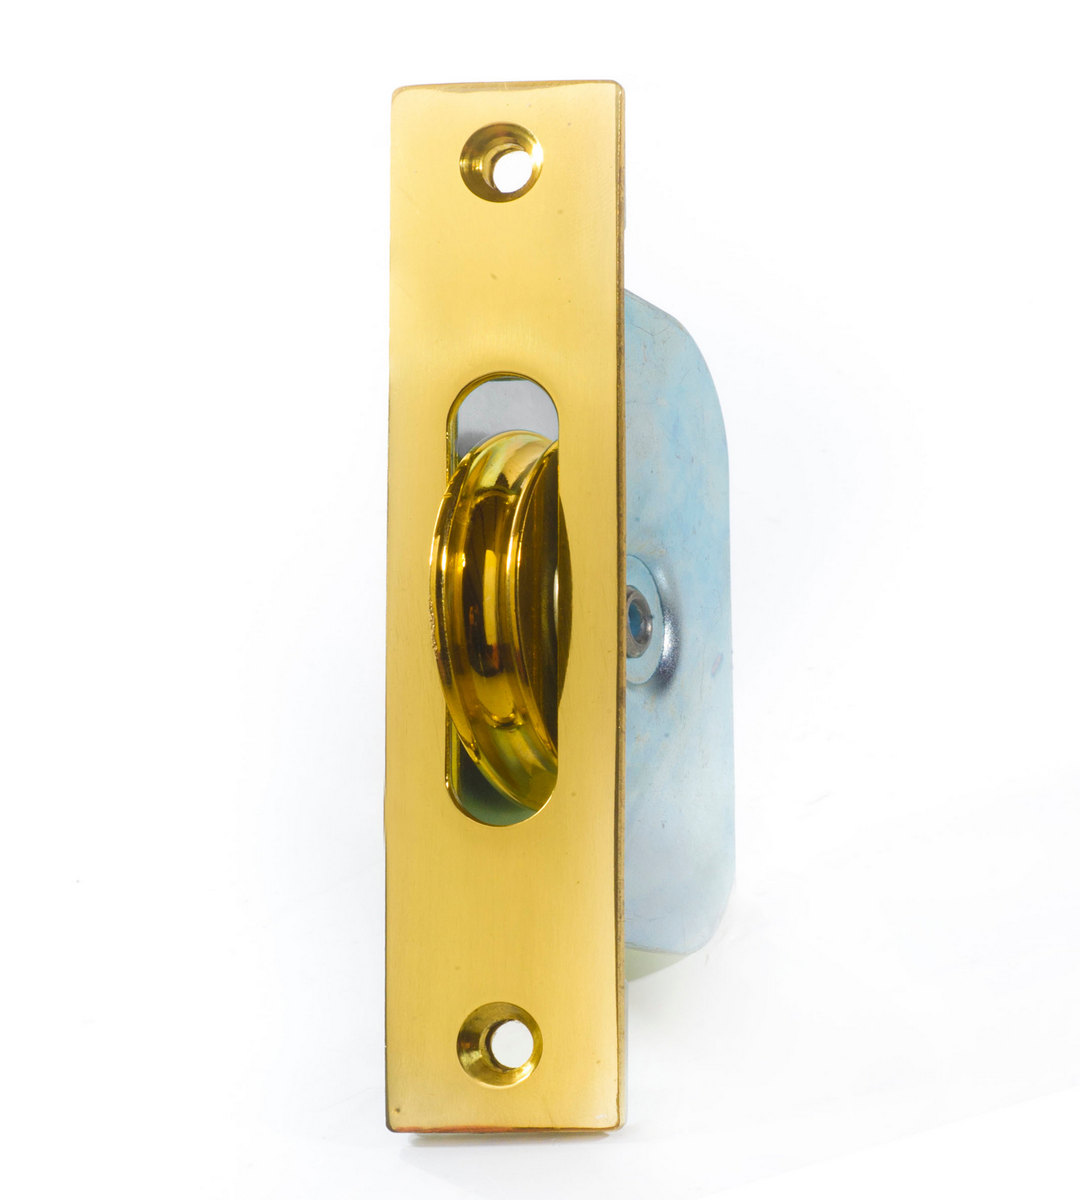 Endurance Square Pulley Wheel 1 3/4'' Wheel Polished Brass